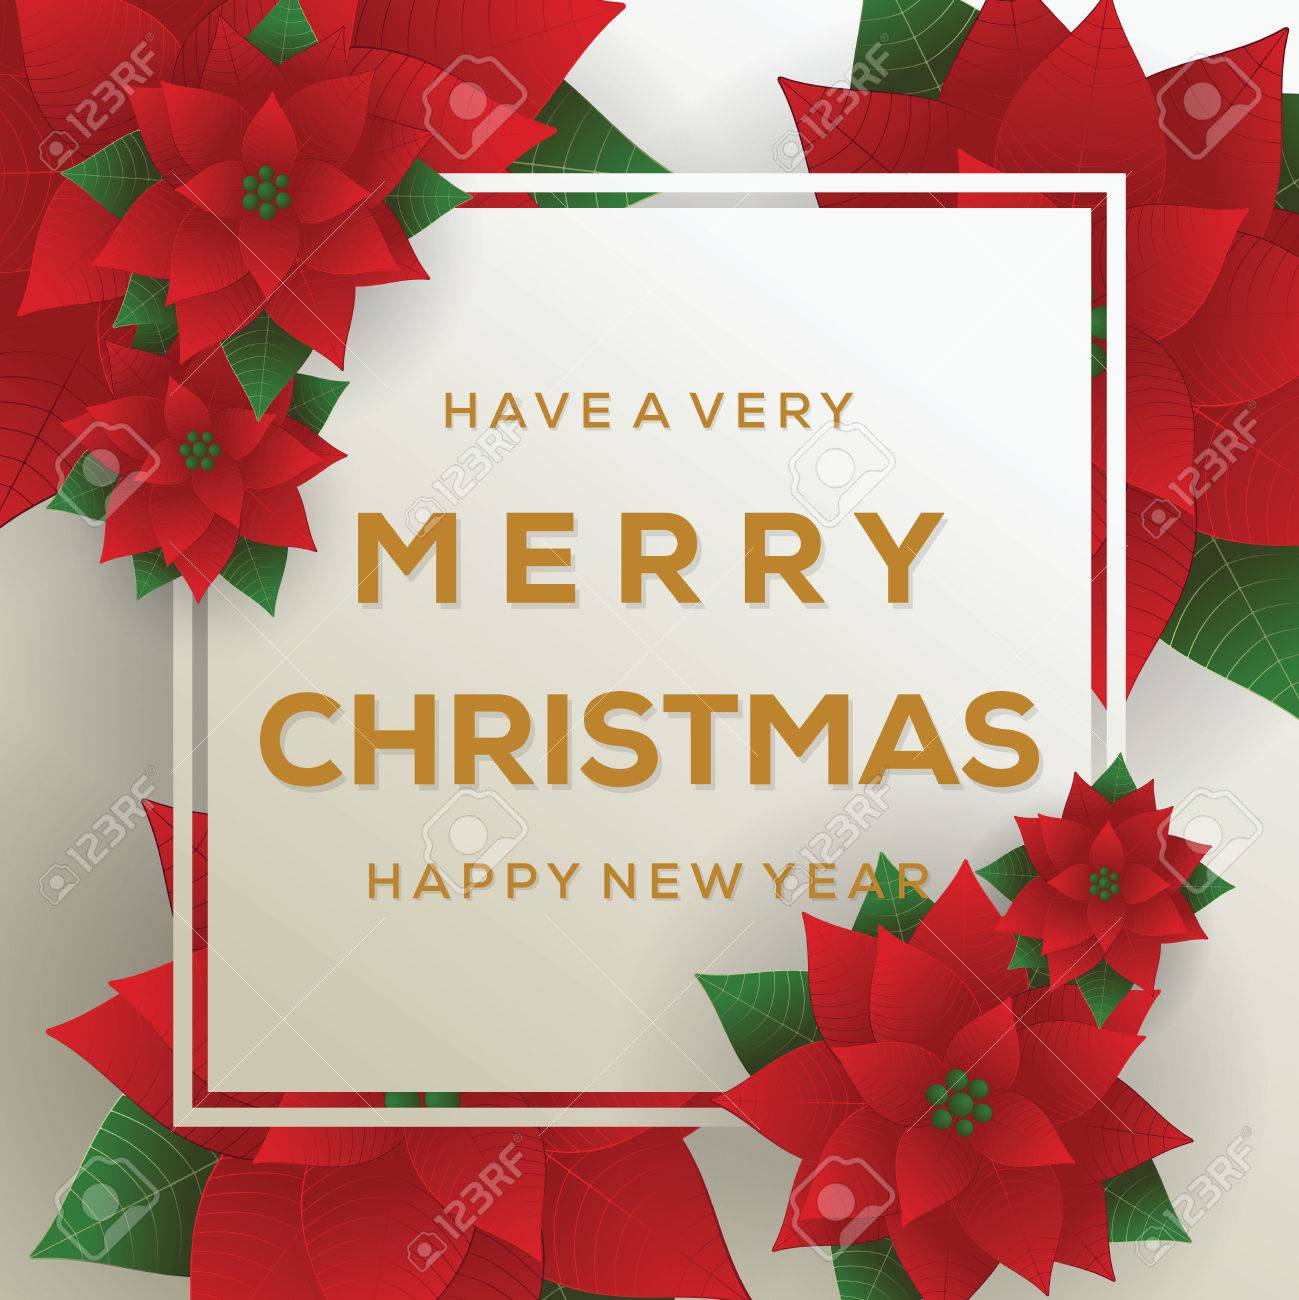 Merry Christmas. Card. Happy New Year. Red Background. Christmas ...